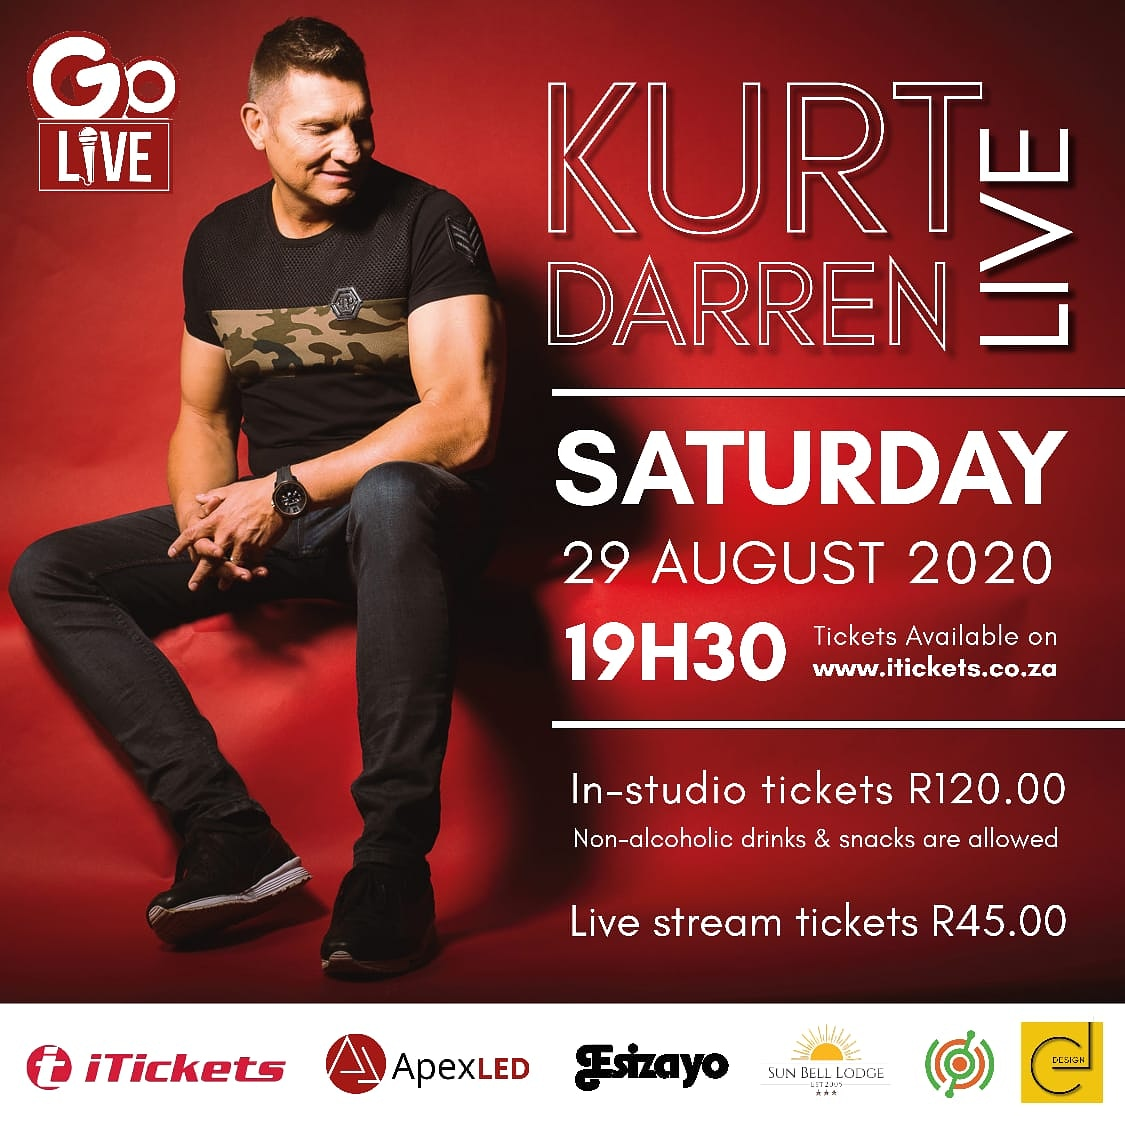 Go L🎤VE  Kurt Darren LIVE  Sat 29 Aug @ 19h30 Book:⬇ 💥 https://t.co/2rR0kOuvT0  🎼 * In-Studio Tickets - R120:00  Non-alcoholic drinks & snacks allowed * Live Stream Tickets - R45:00 @kurtdarren9 @iTicketsSA @apexLED @Esizayo @1Sunbelllodge @SelectMusiek @SonyMusicAfrica https://t.co/kAkquDqvDj